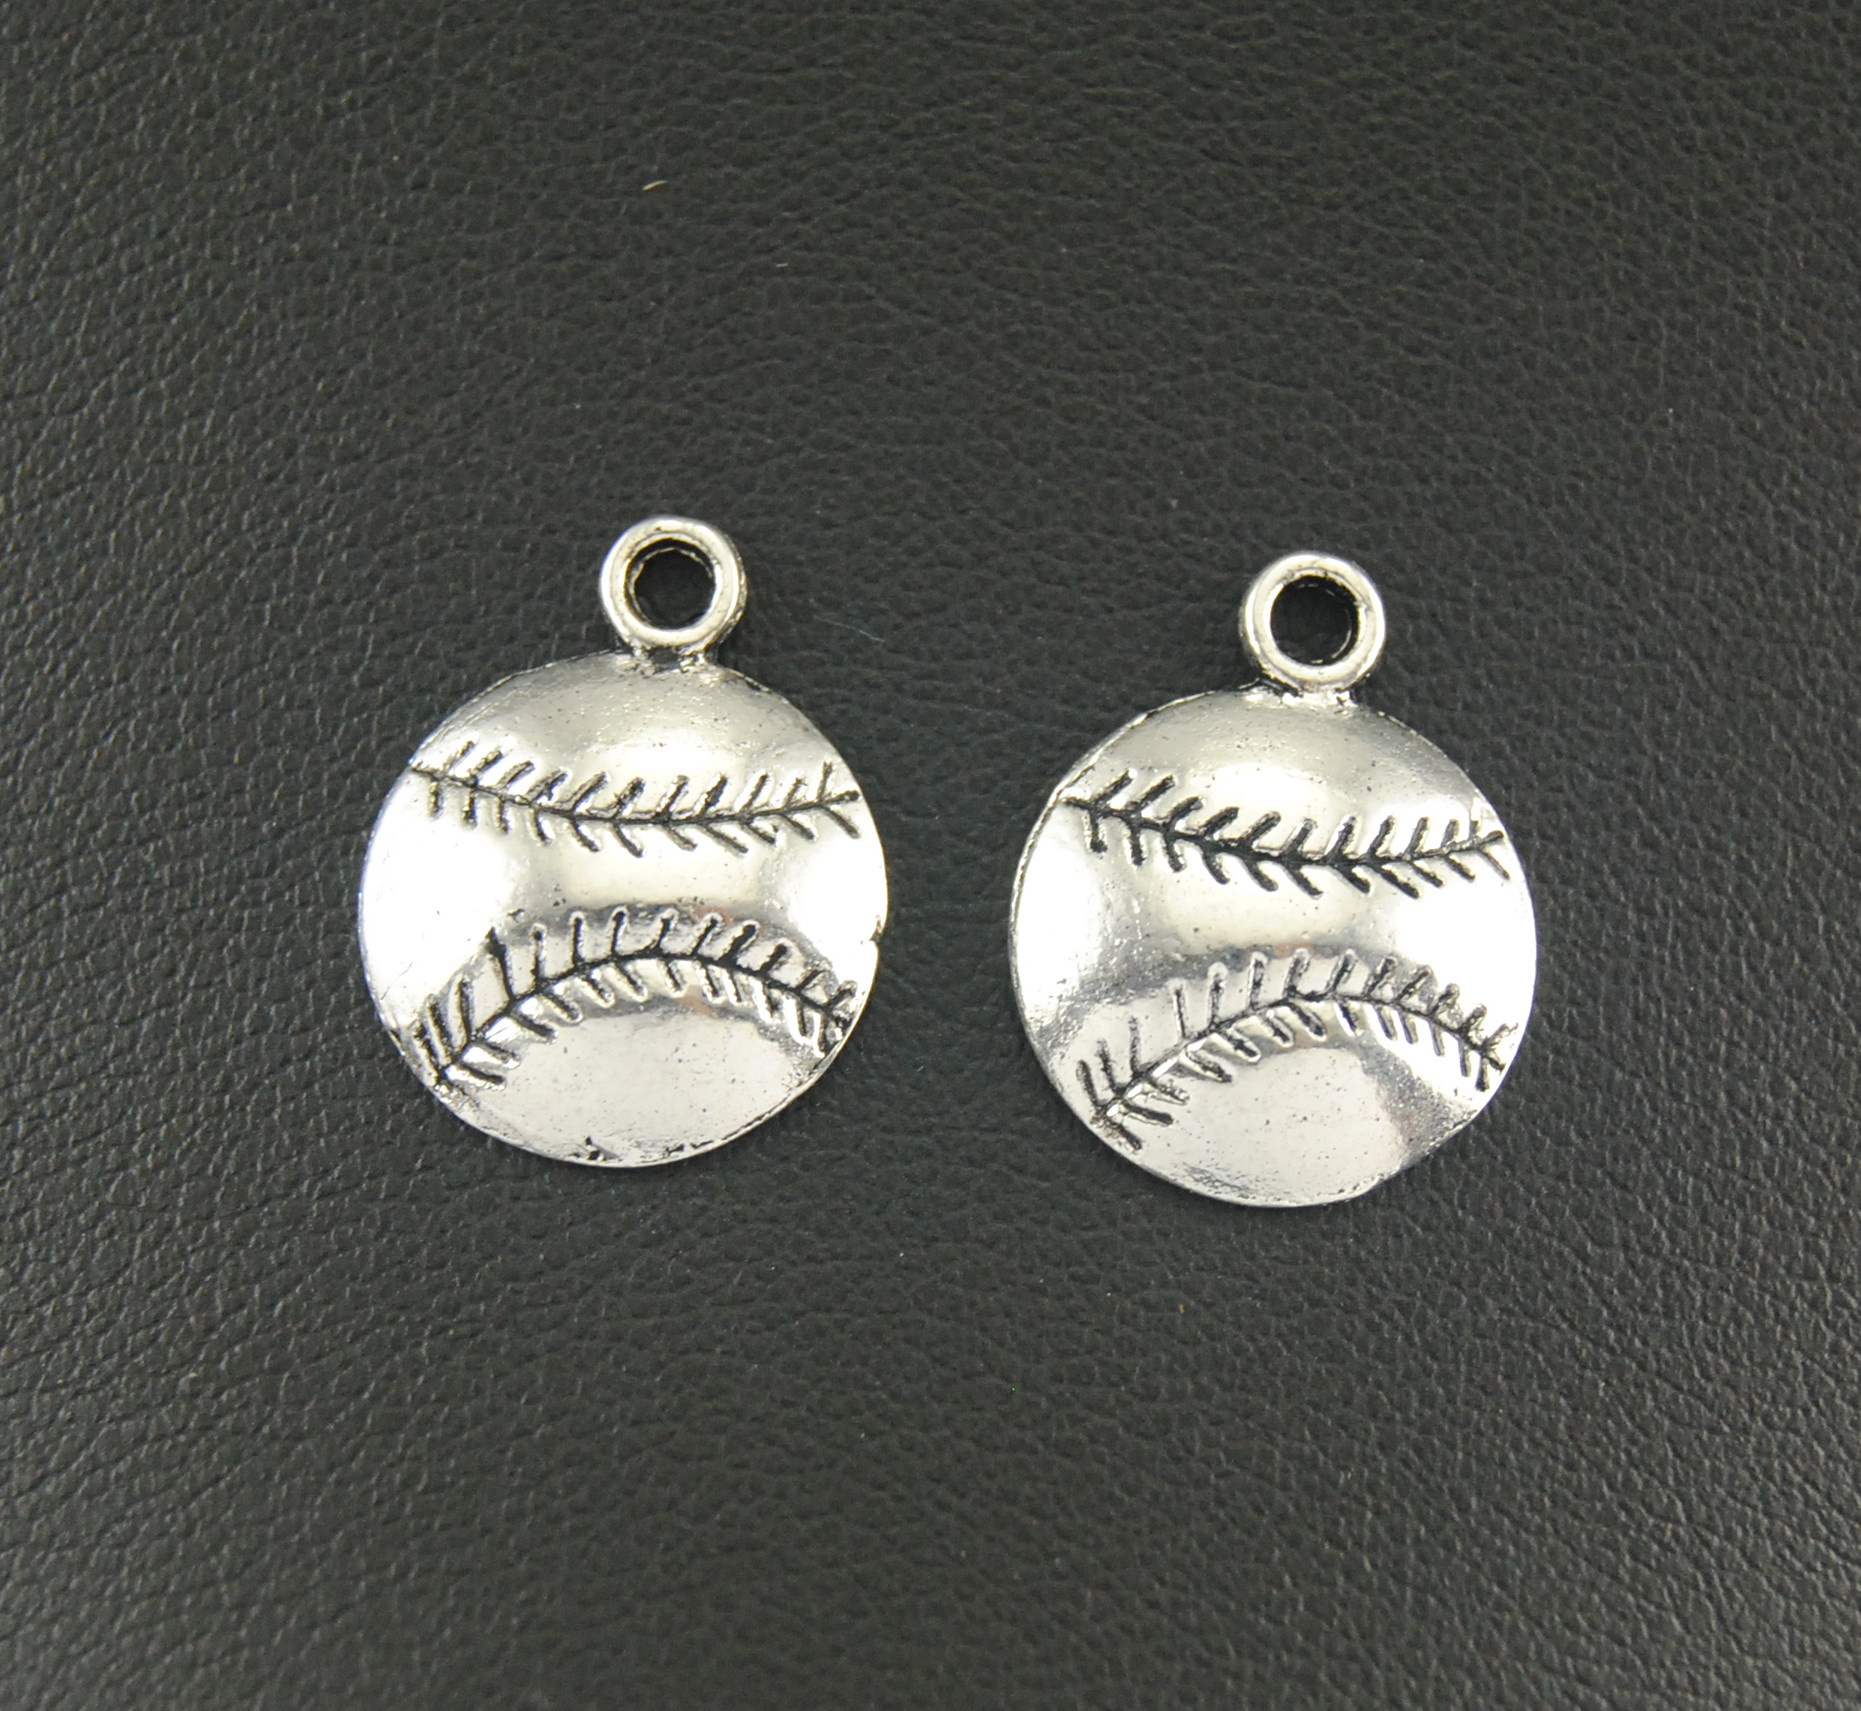 hof bat new pendant and image necklace stainless products x baseball